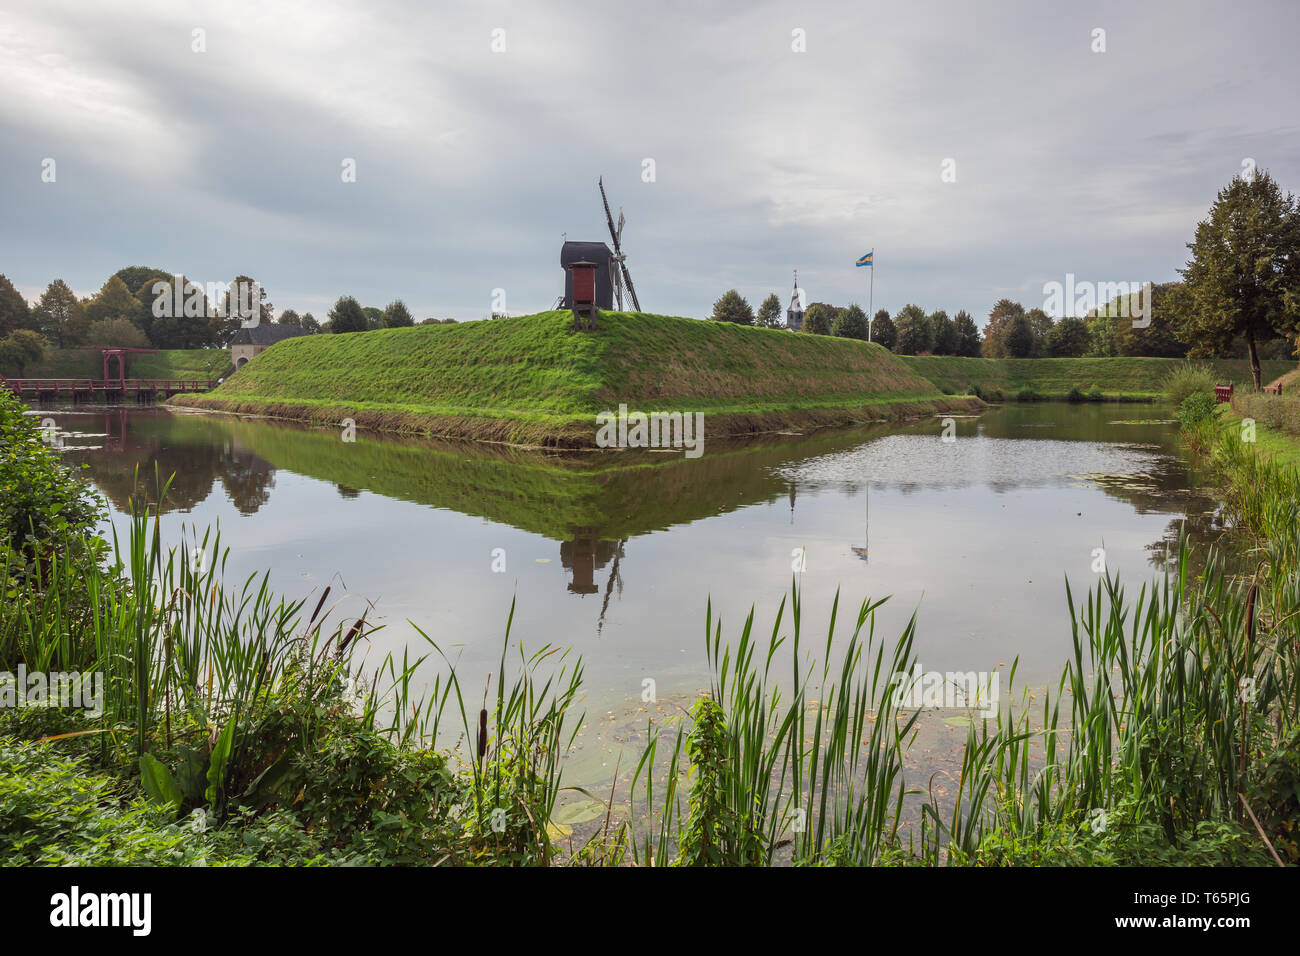 Looking at the fortified wall of Bourtange with the windmill in the background - Stock Image